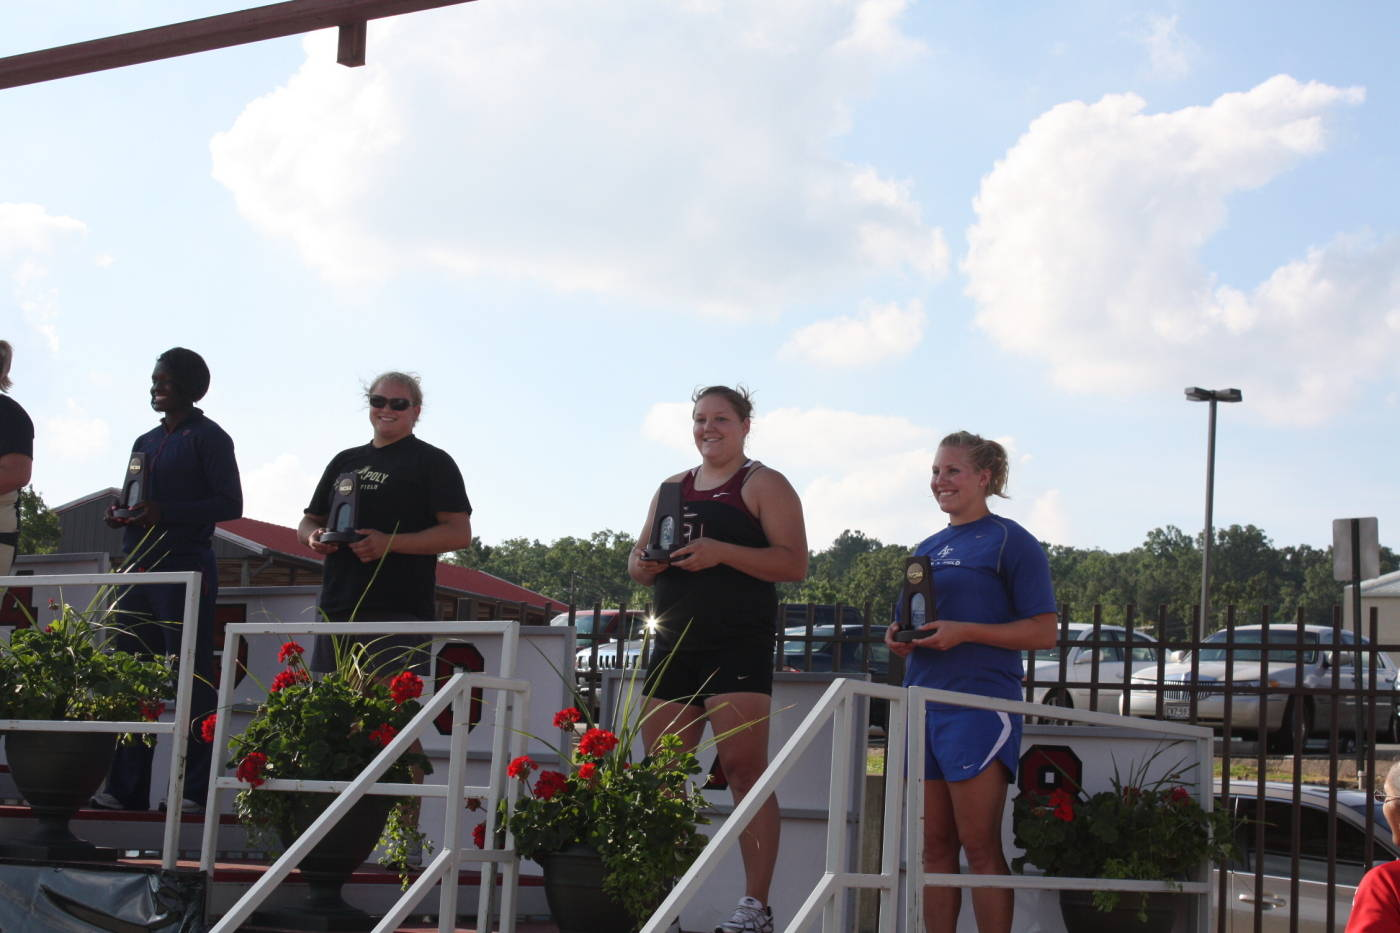 Allyn Laughlin on the medal stand.